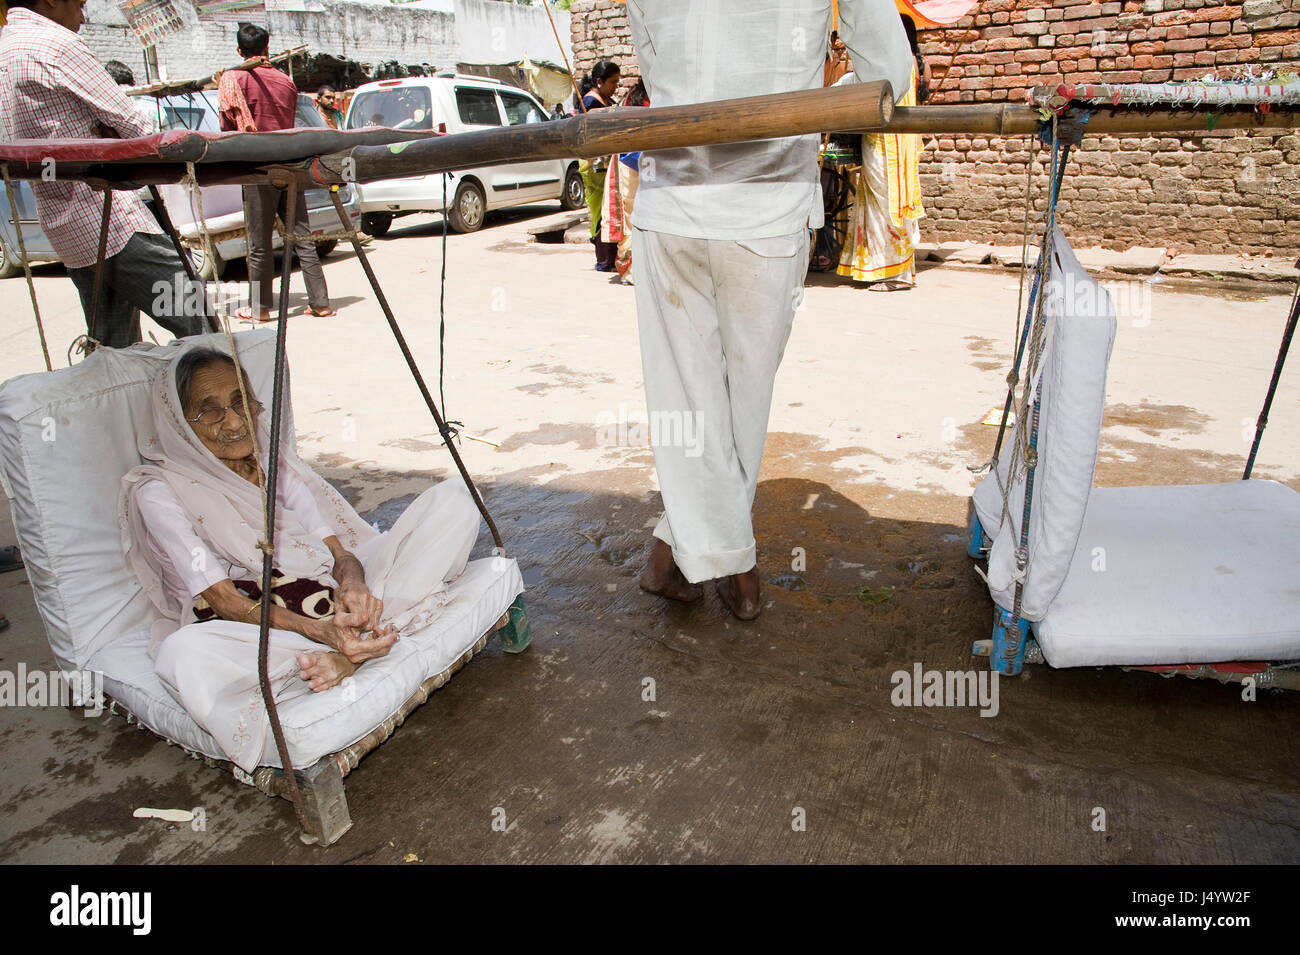 Porters carry old pilgrims of temple, mathura, uttar pradesh, india, asia - Stock Image